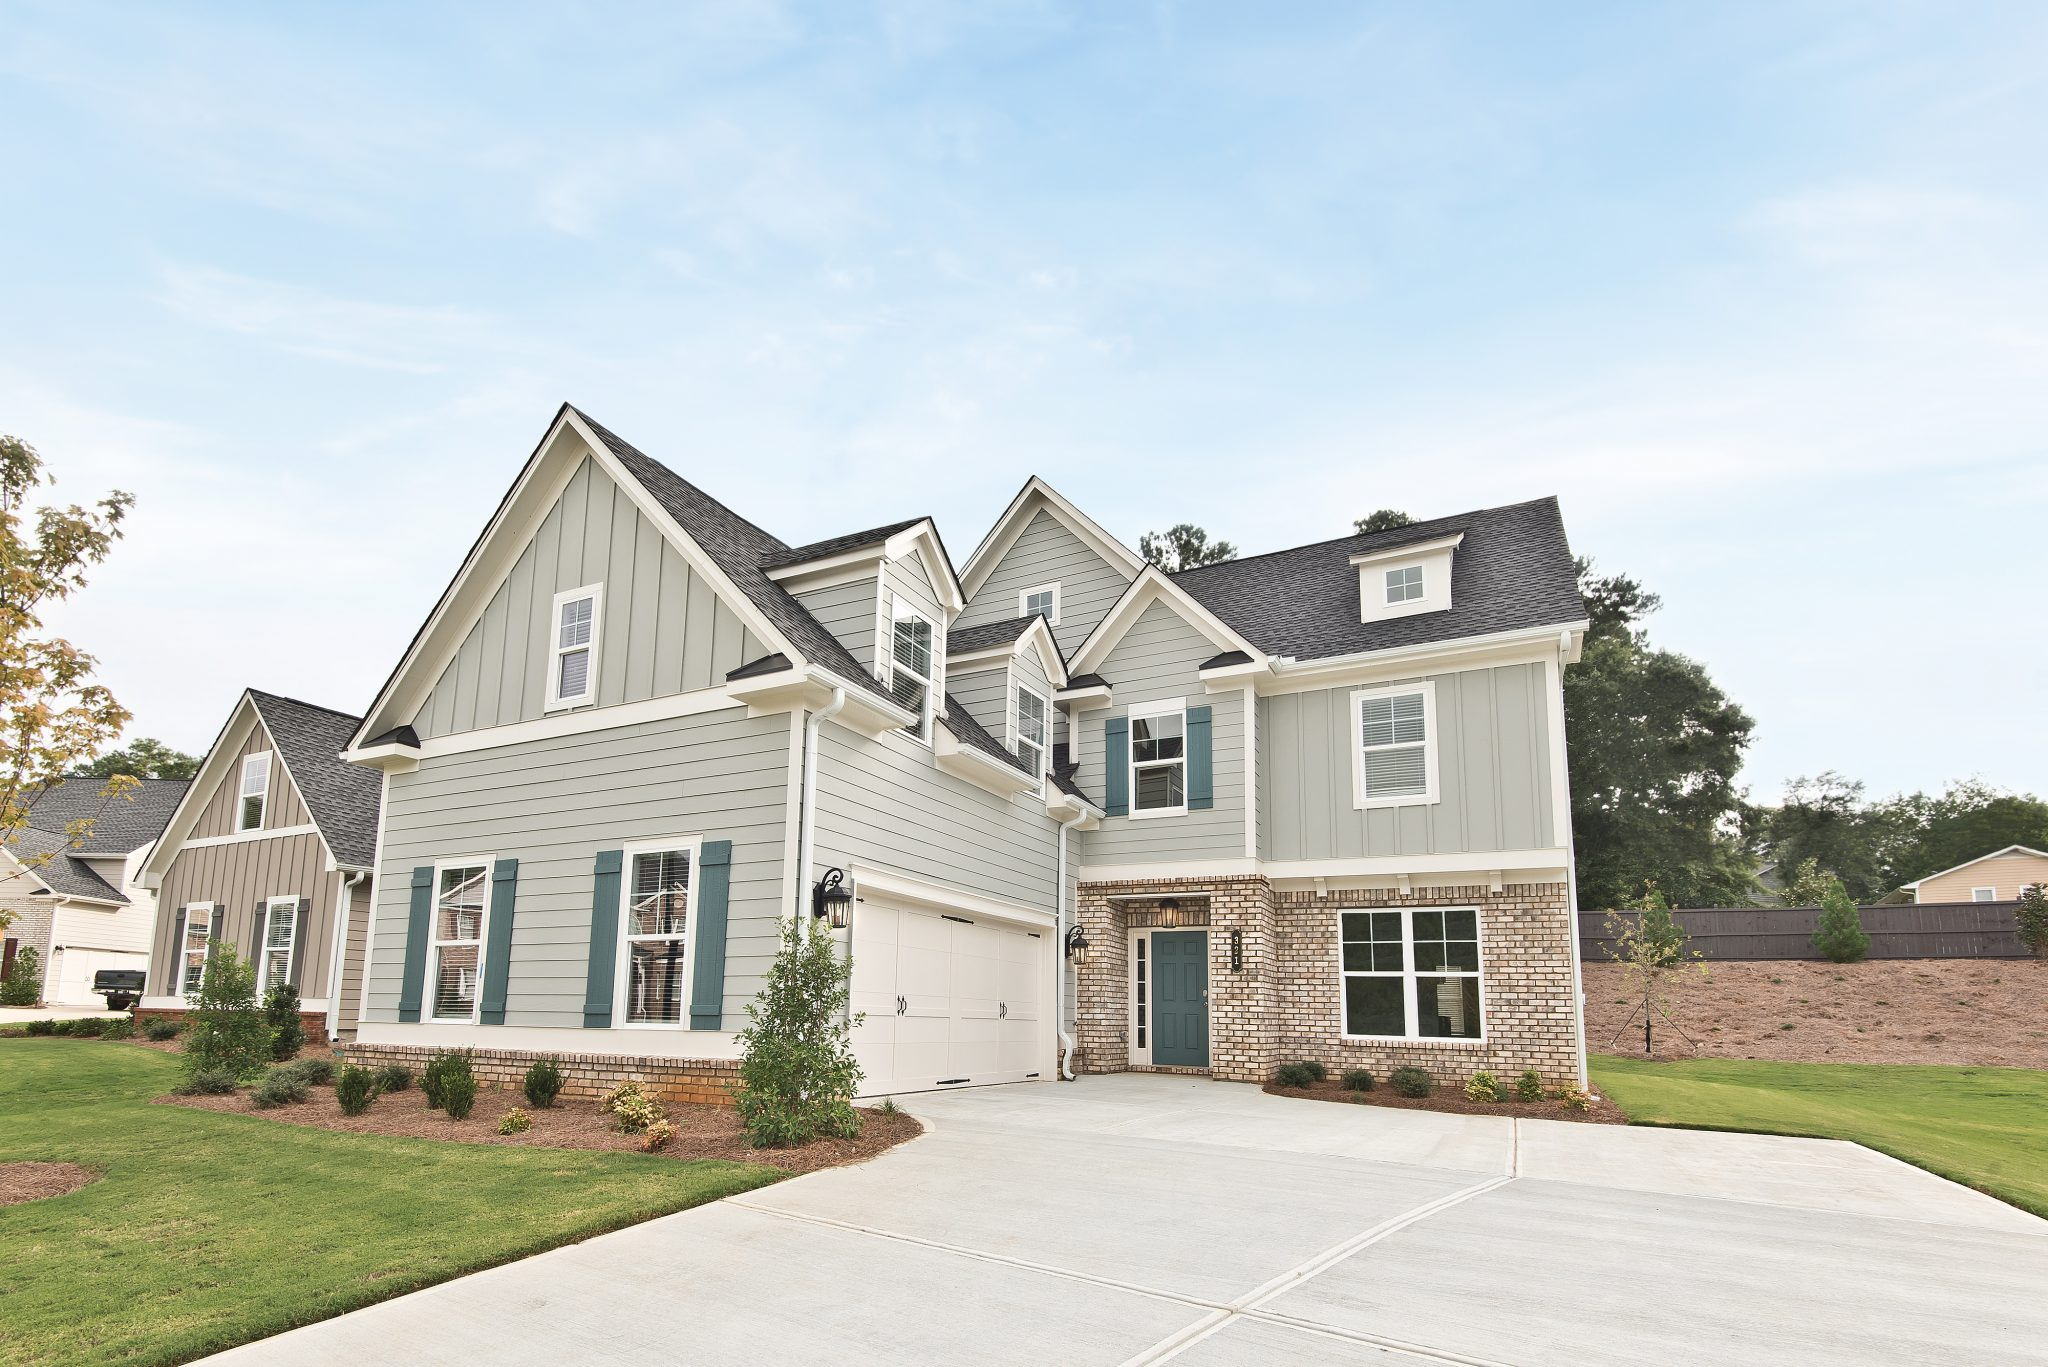 A new construction home in Cobb County at Sandtown Estates